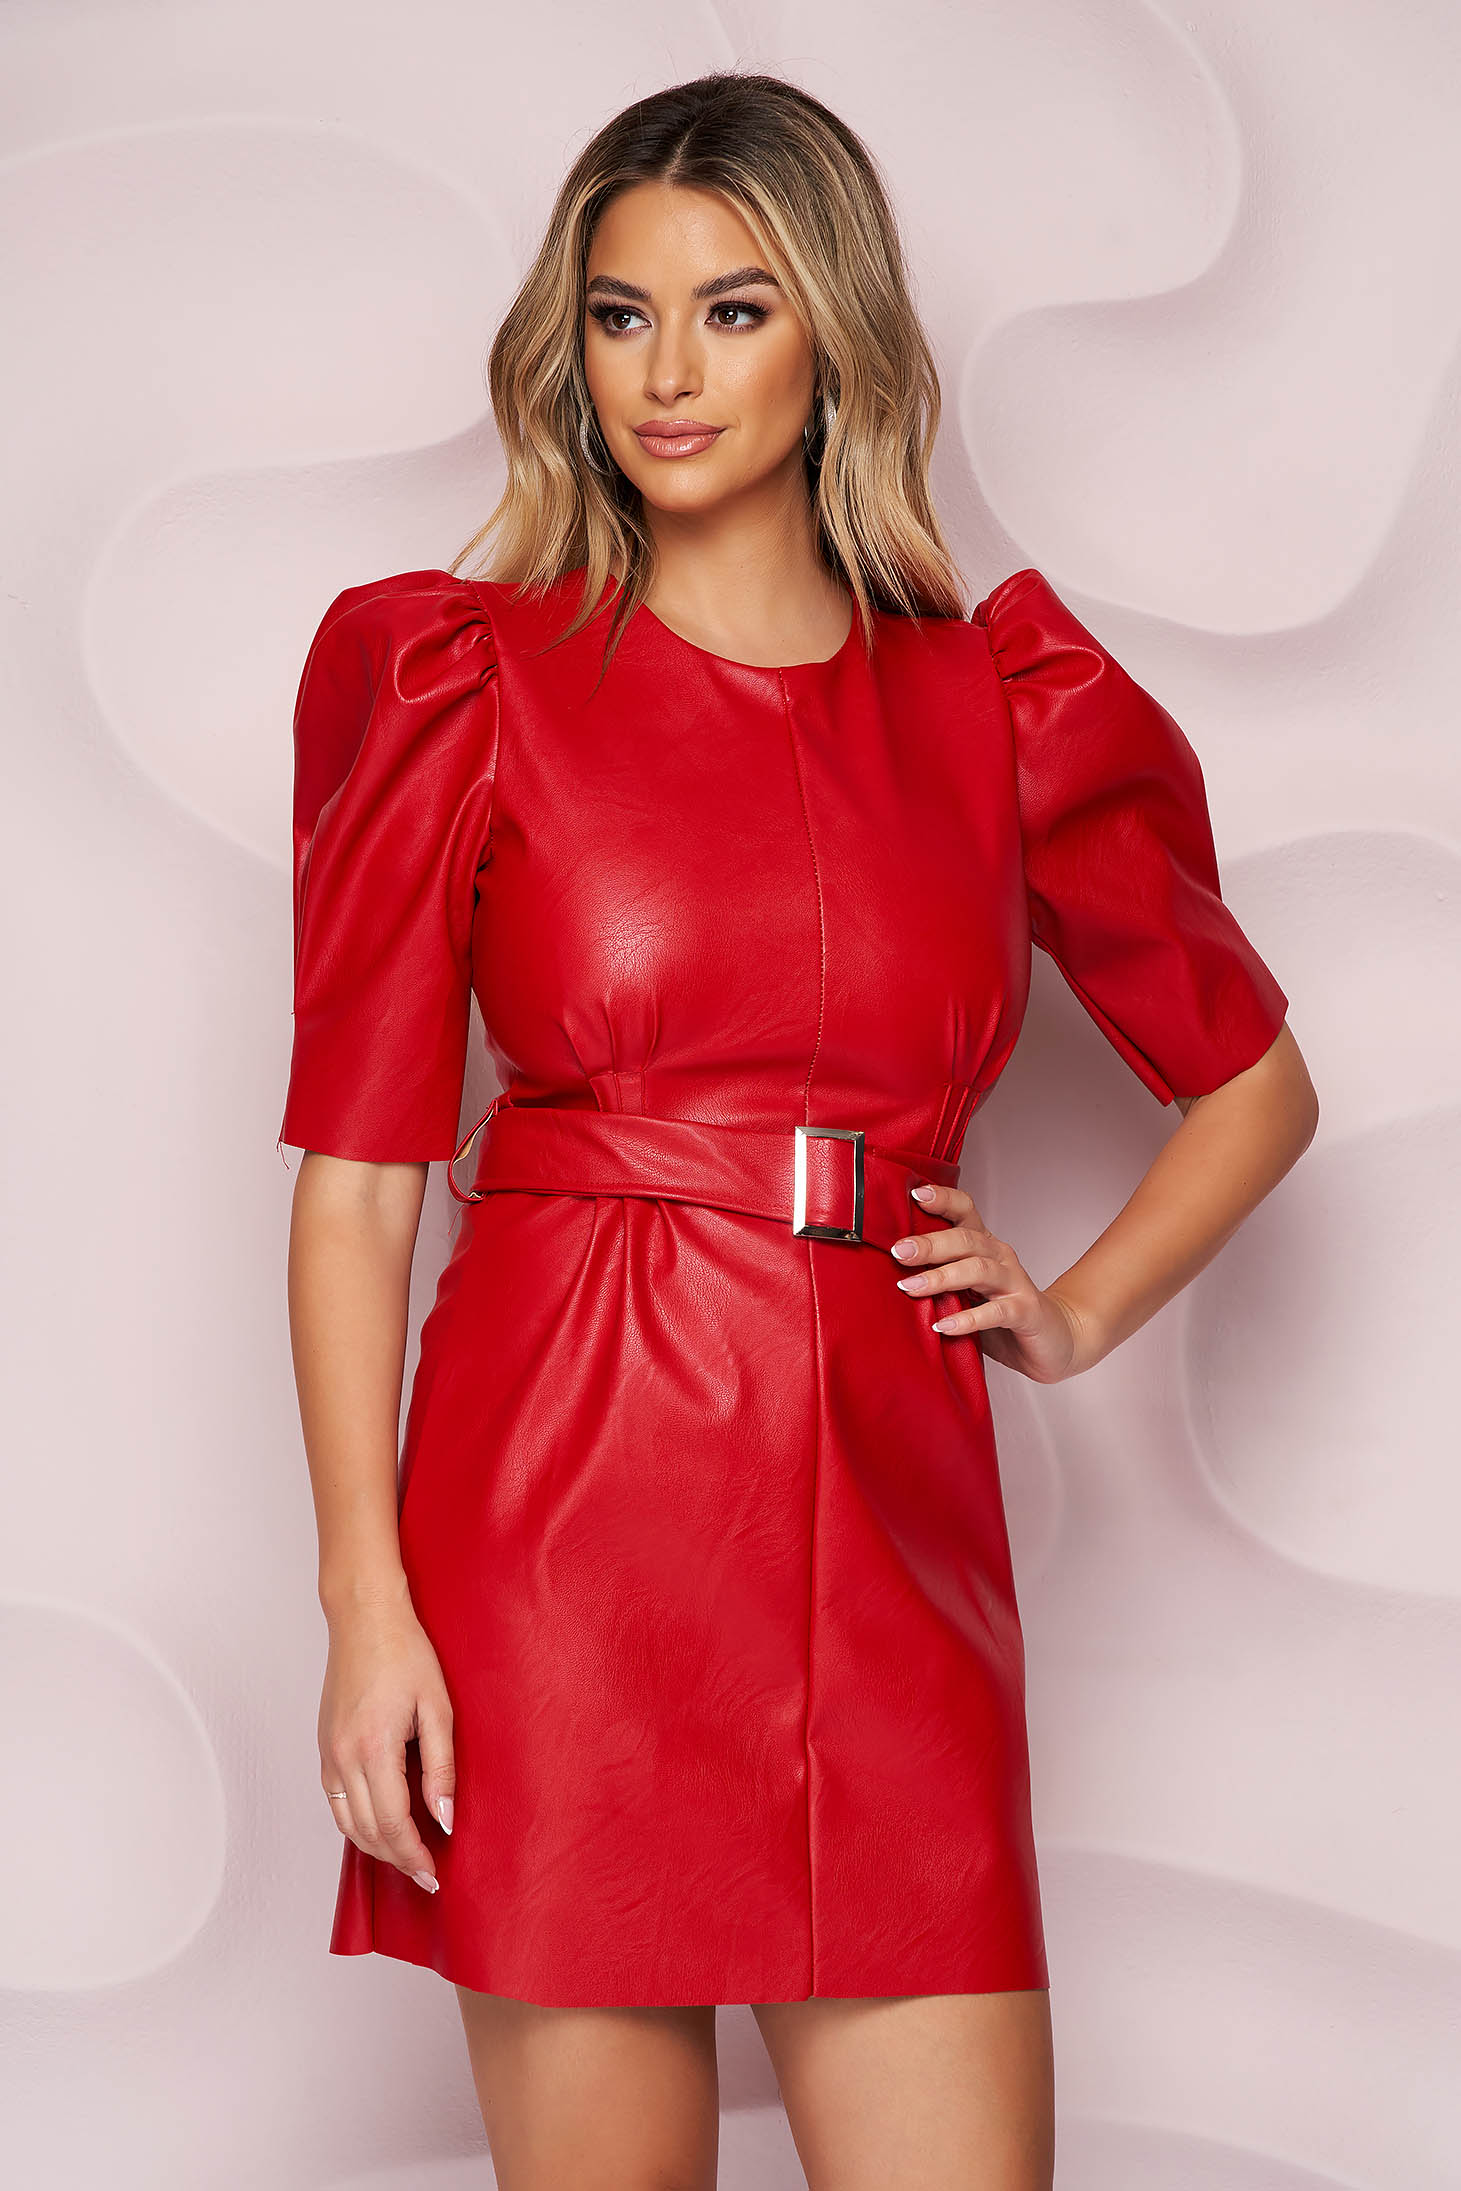 Red dress from ecological leather accessorized with belt with puffed sleeves short cut straight